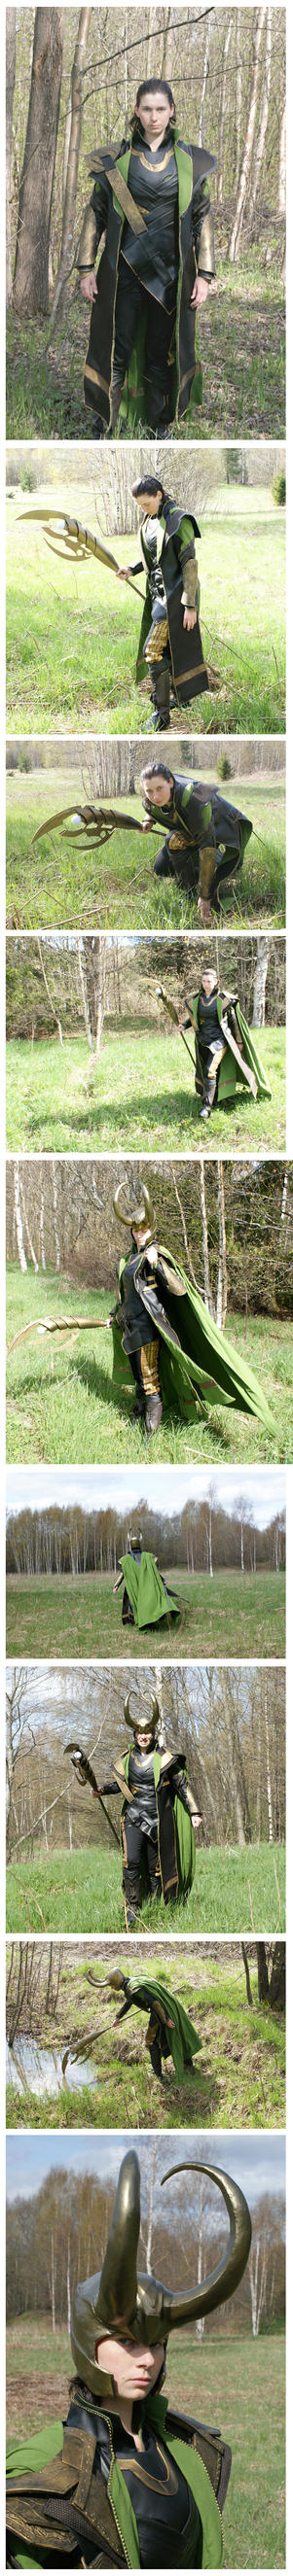 More pictures of the Loki costume by ihni